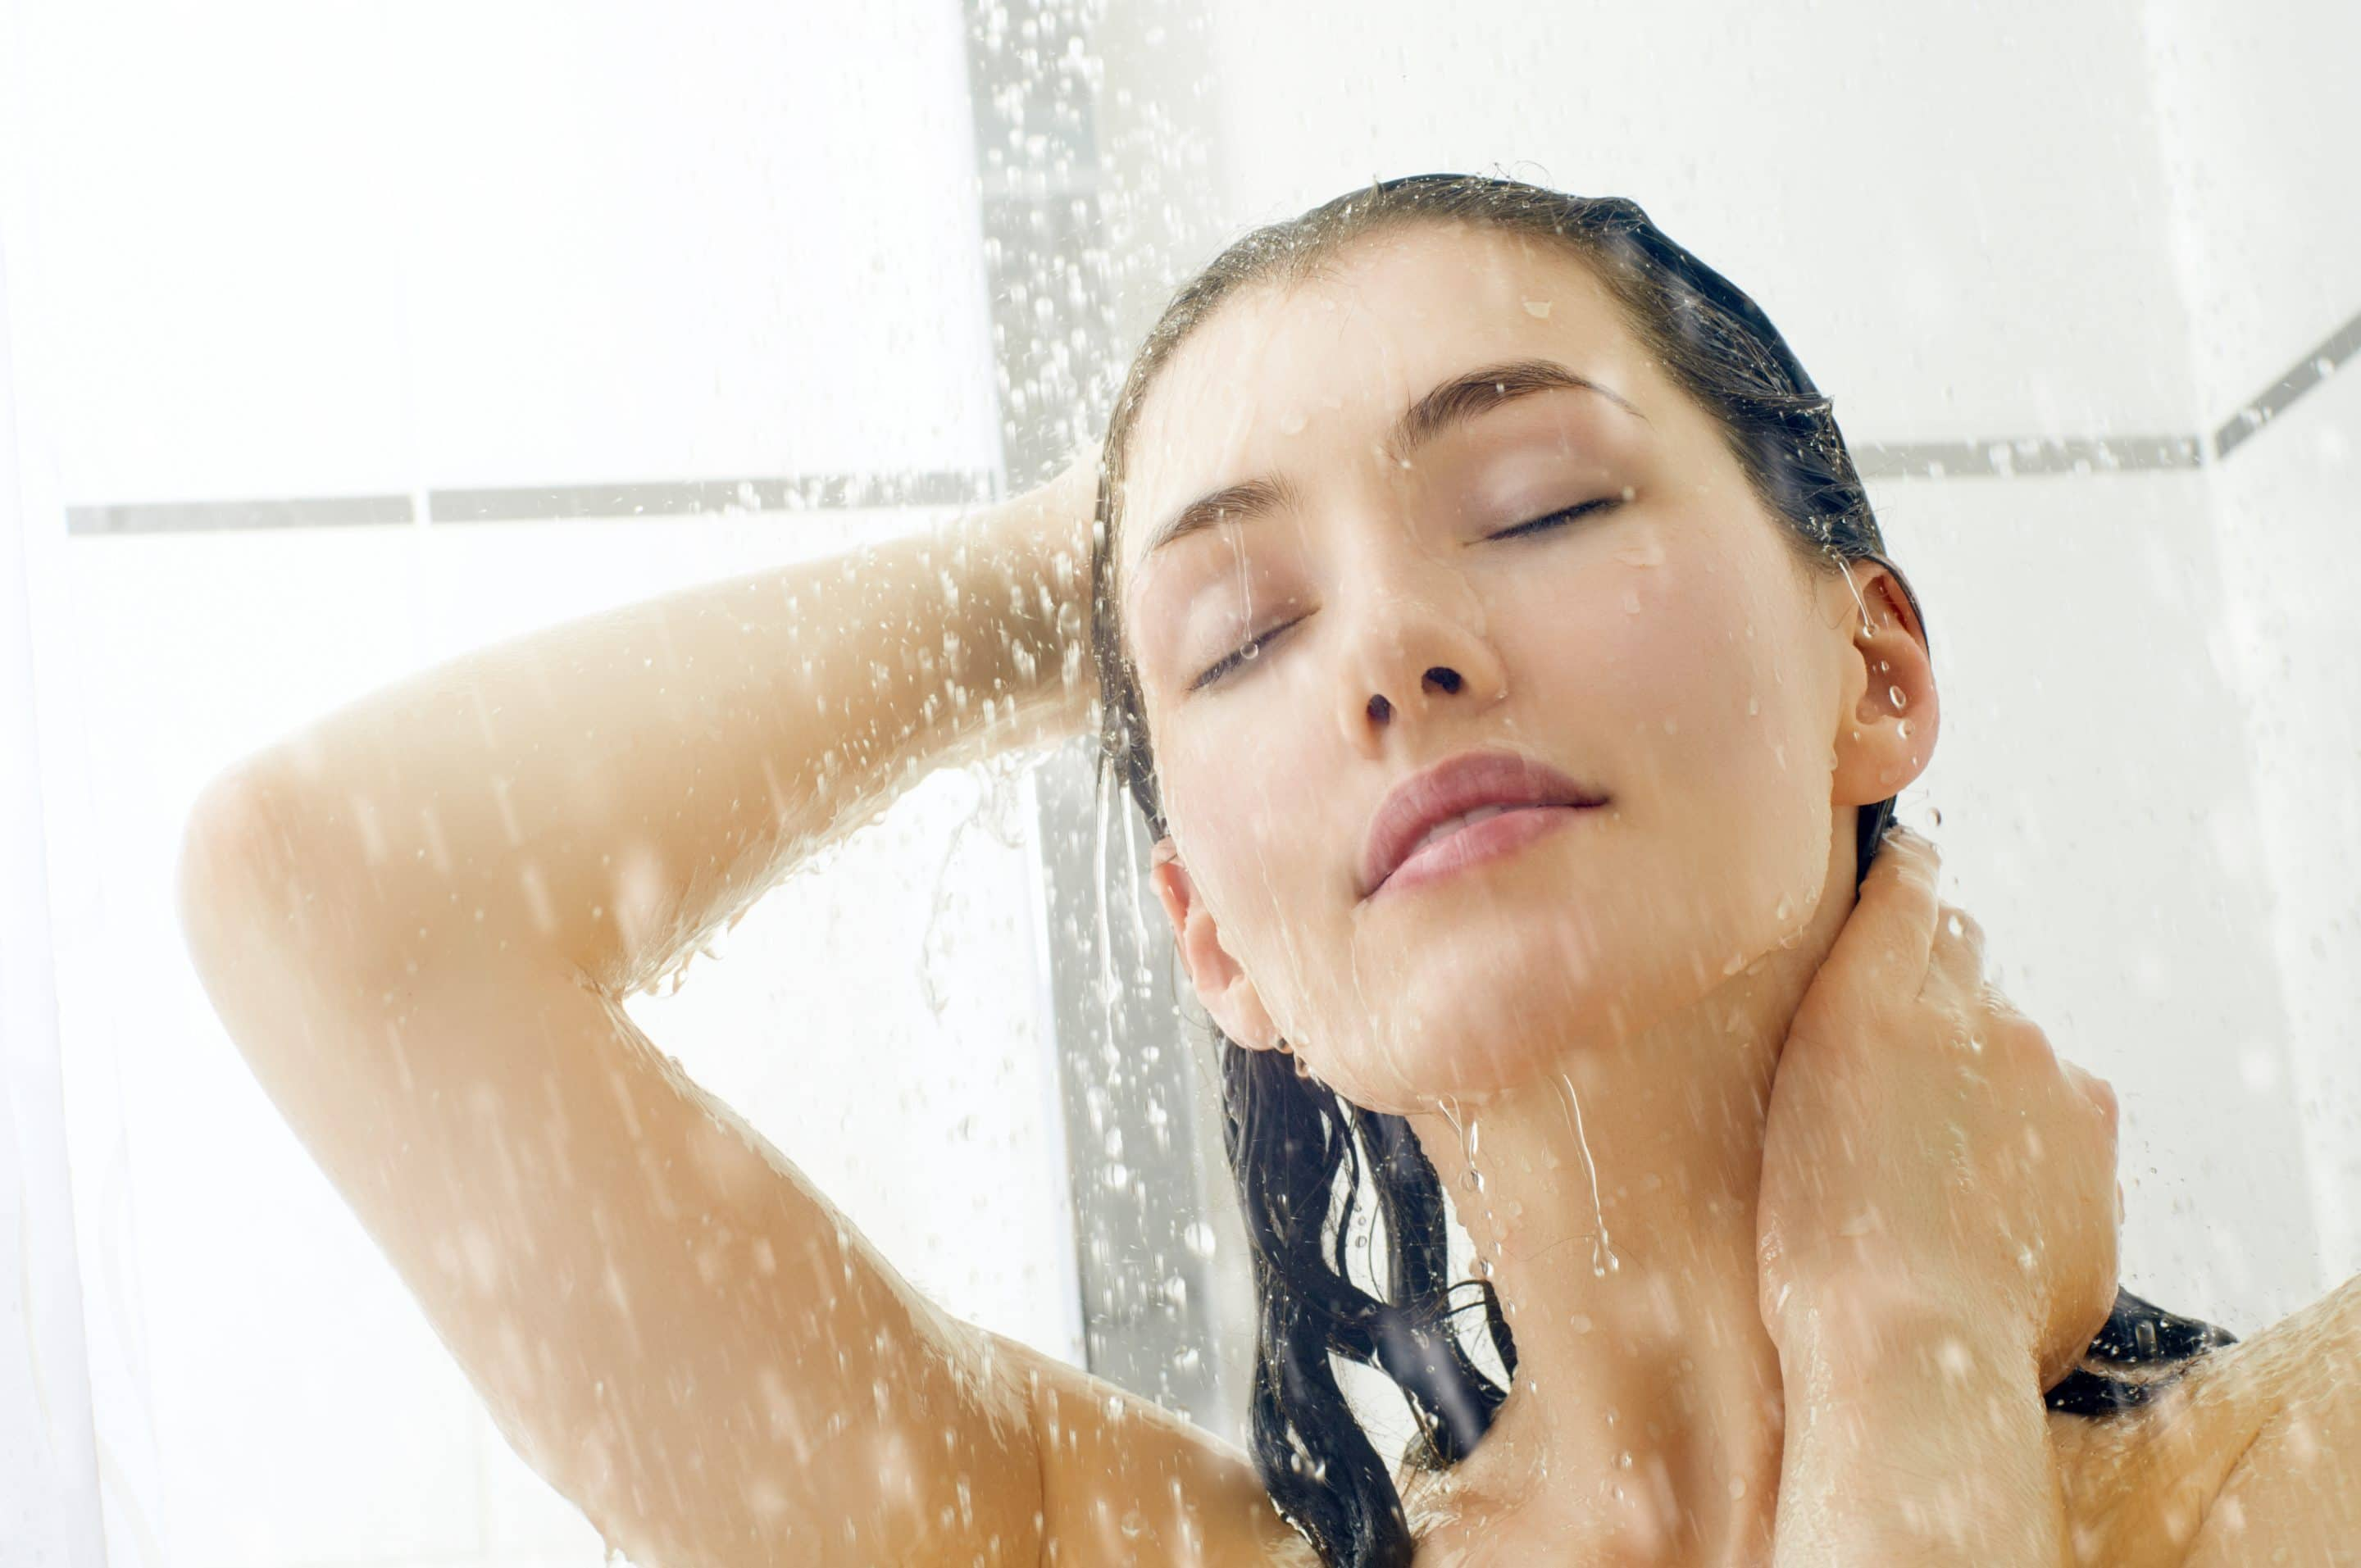 include washing your face as part of your natural skin care routine